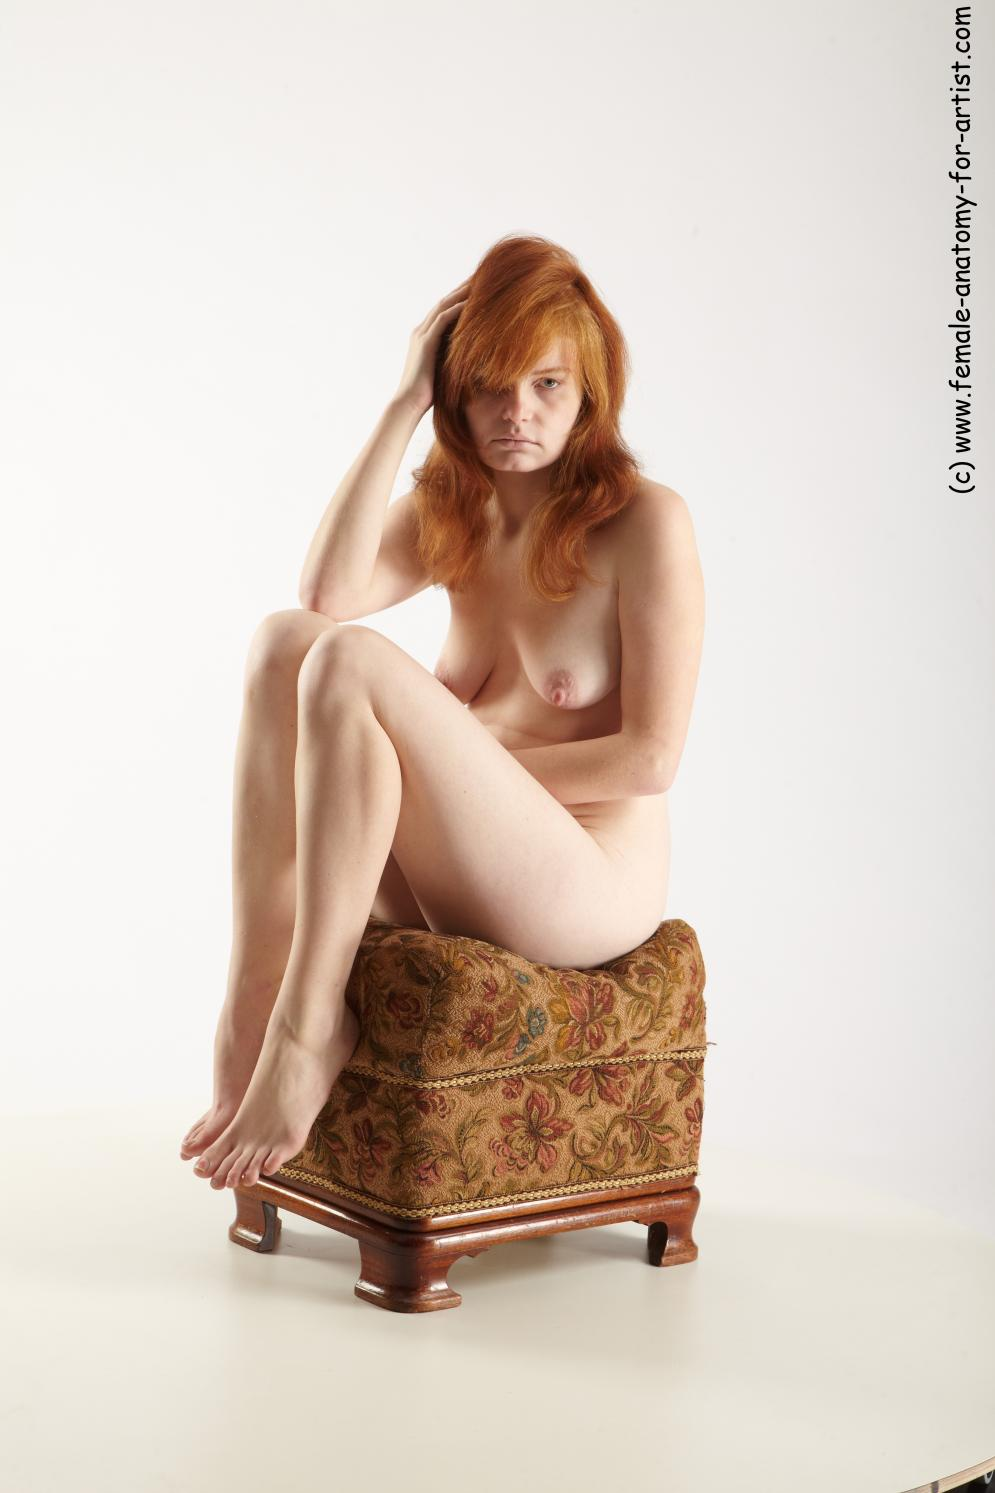 Image from Female Anatomy Photos by Akira Gomi - hana_sitting_17.jpg